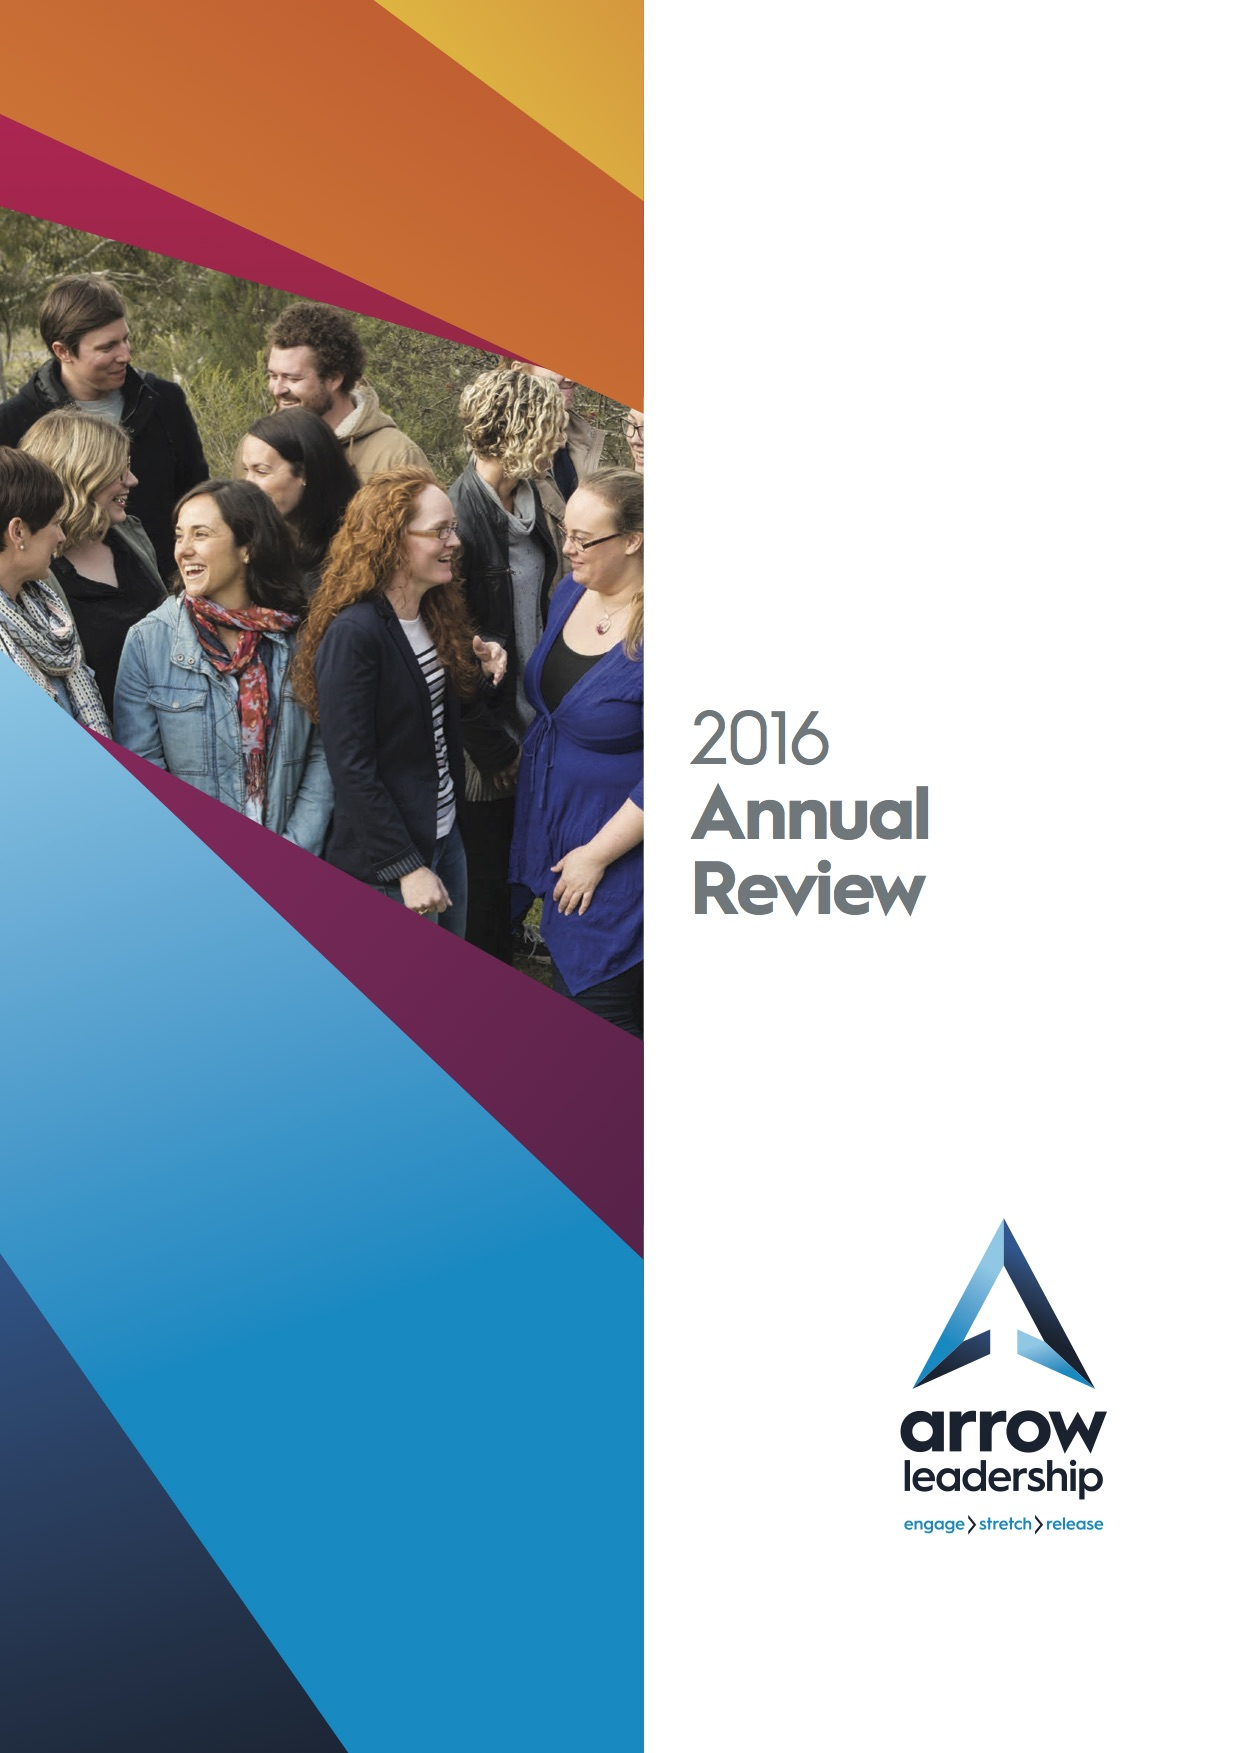 Arrow Leadership 2016 Annual Review